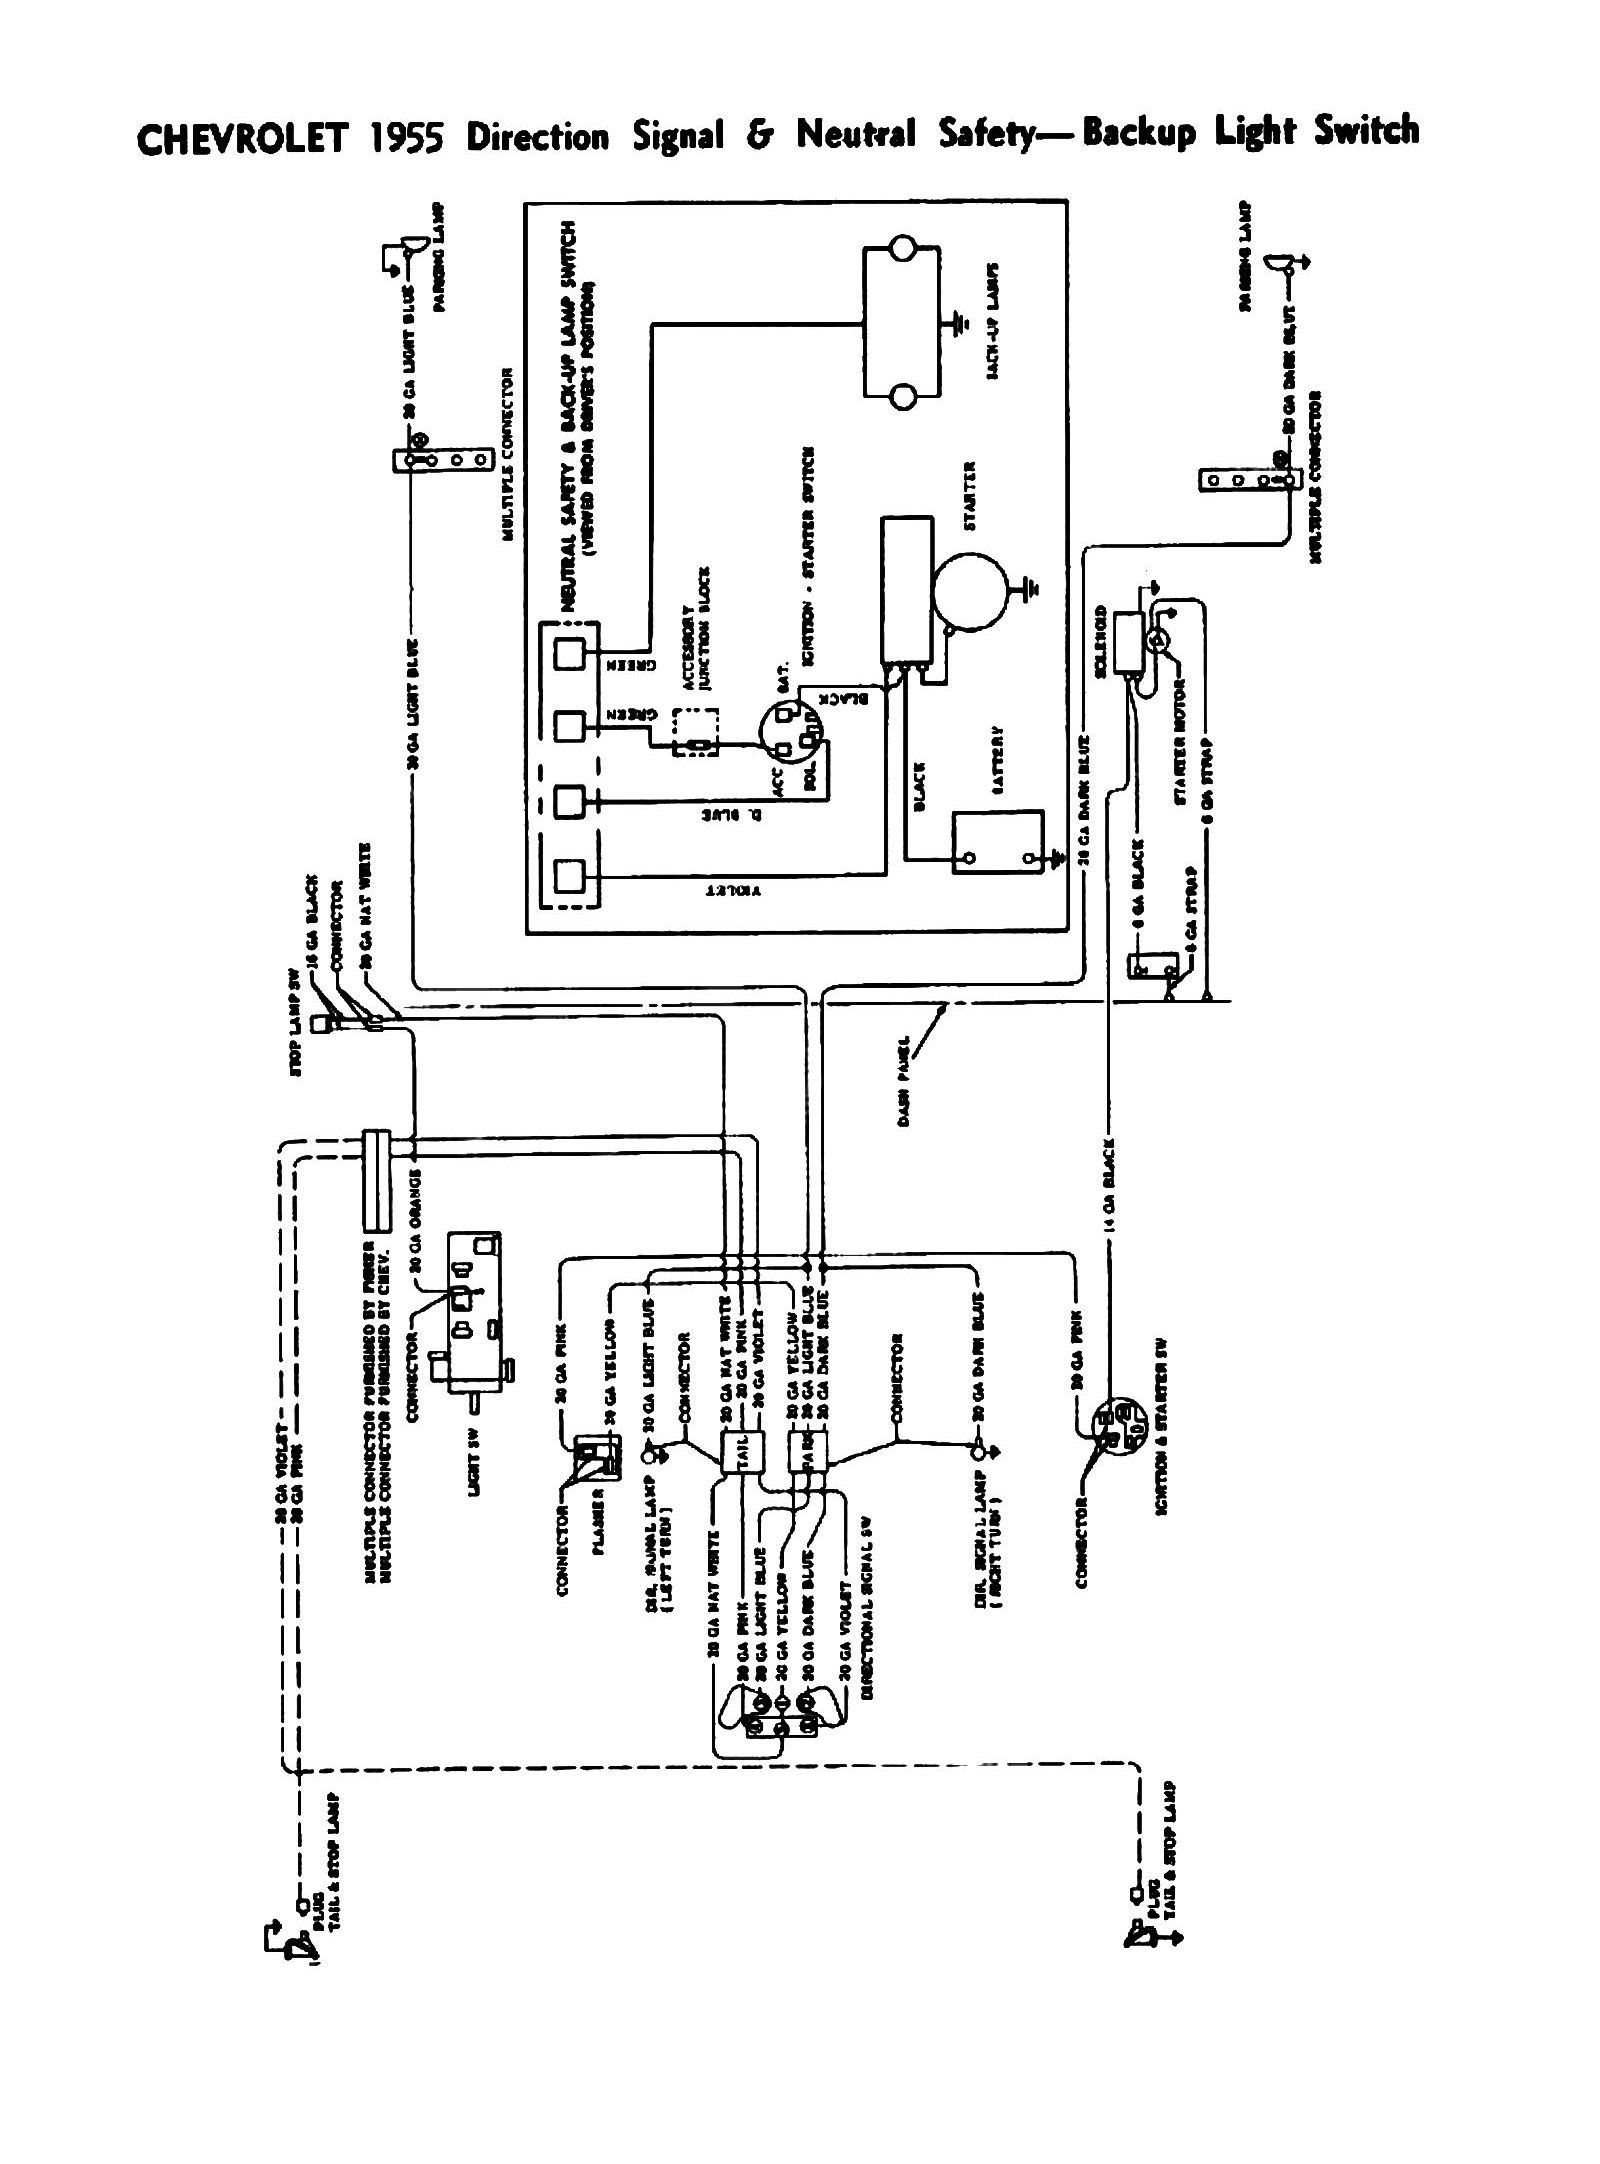 [DIAGRAM] 1992 Chevy Heater Diagram FULL Version HD